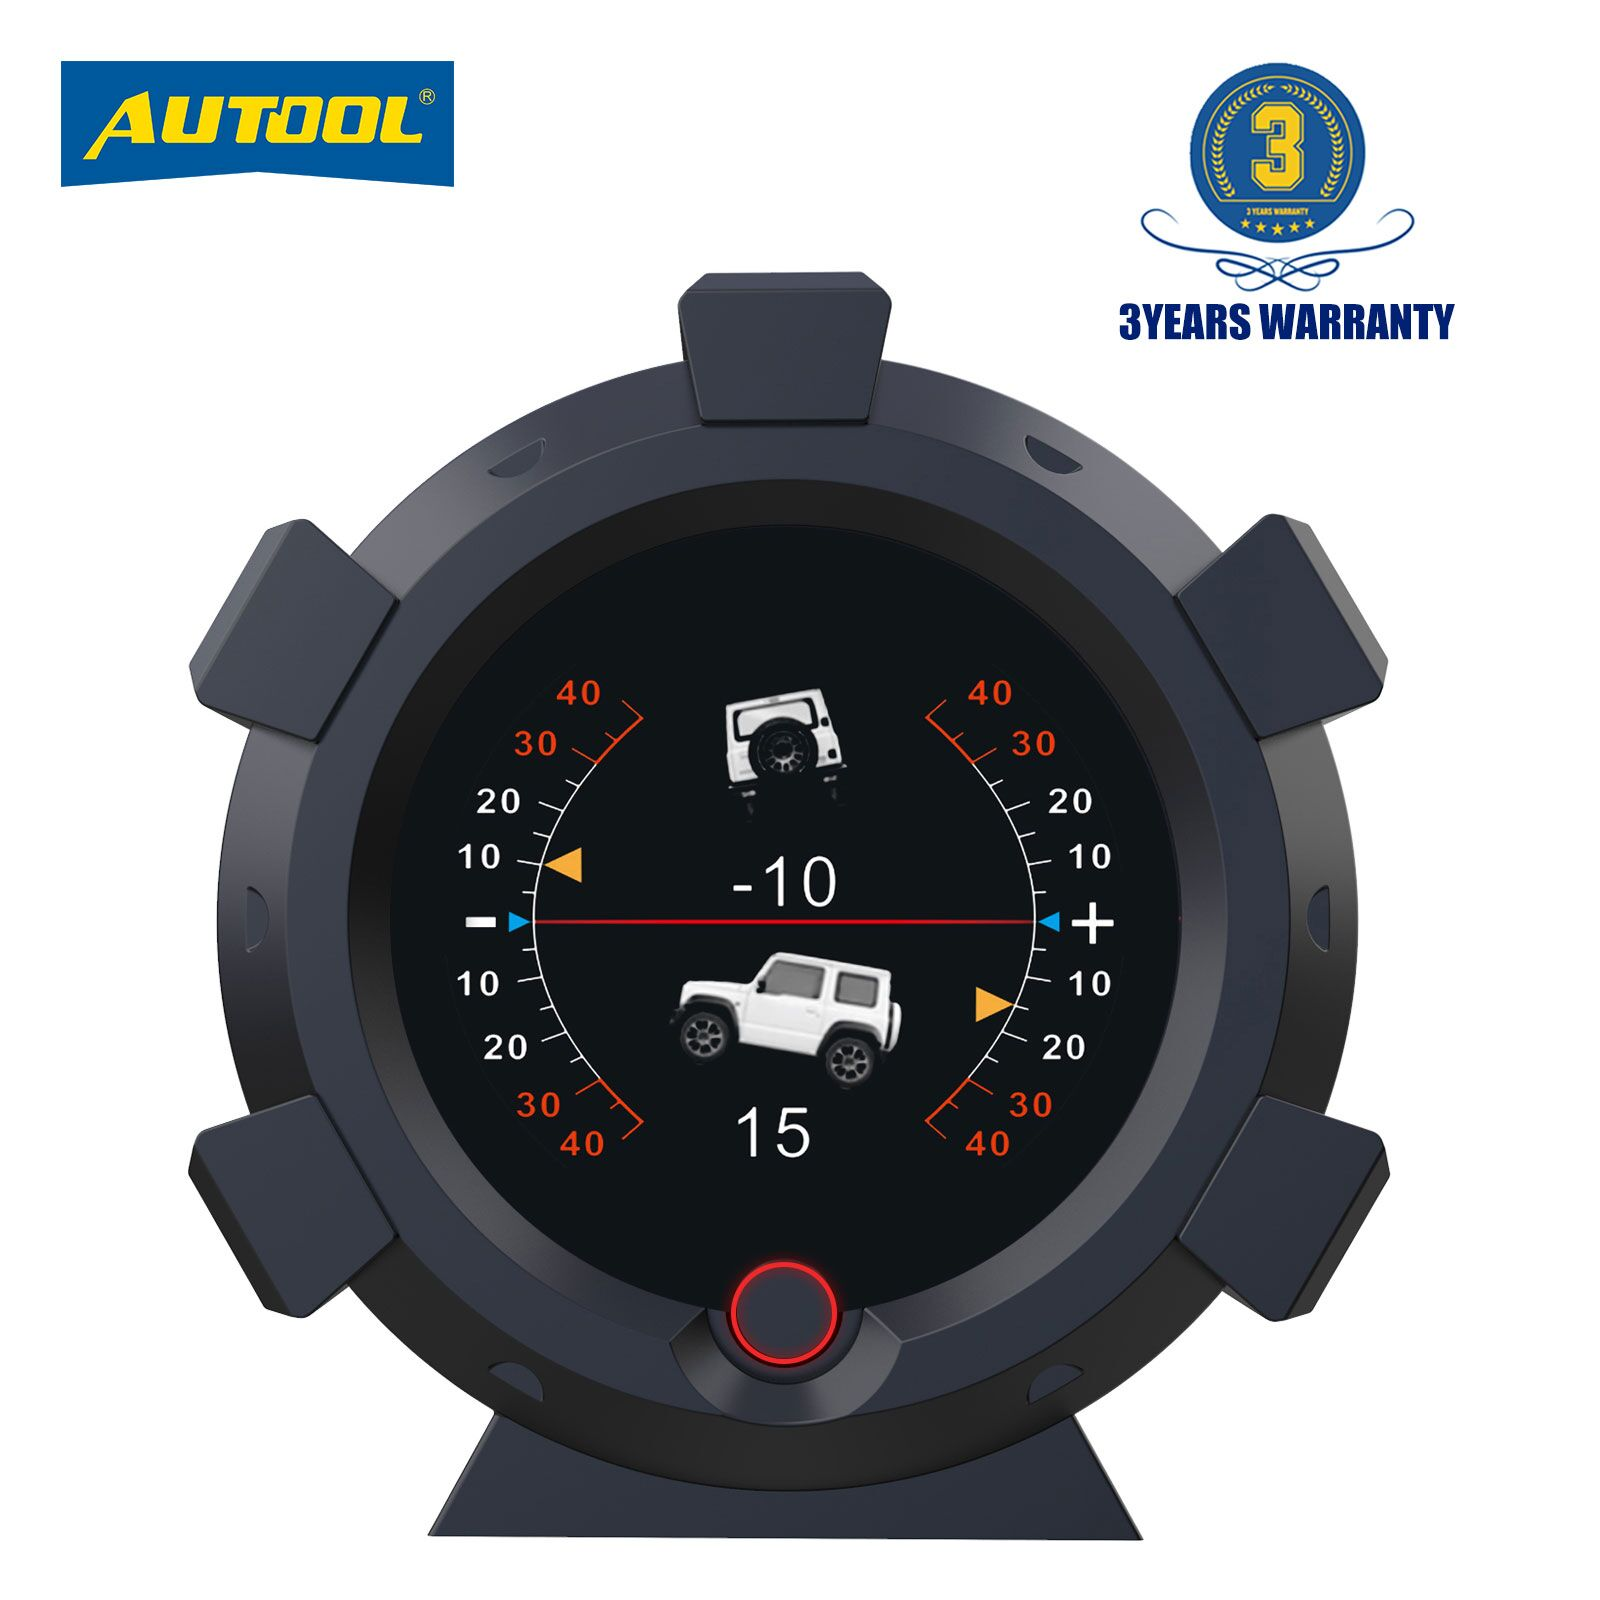 AUTOOL X95 Car 4x4 Inclinometer Provide Slope Angle Speed Satellite Timing GPS Off-road Vehicle Acce